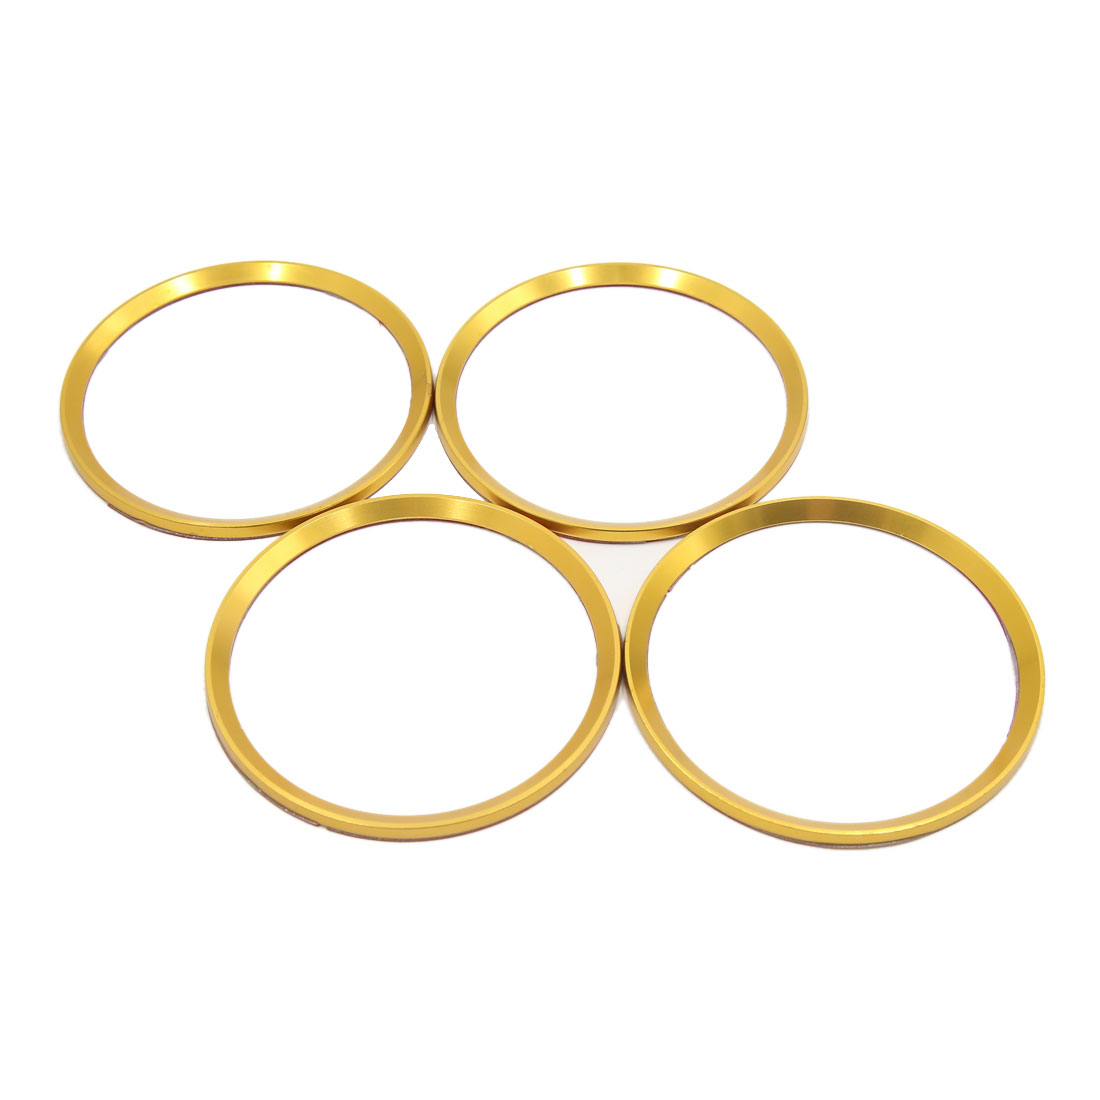 4pcs Gold Tone Car Wheel Center Hub Emblem Decorative Trim Ring Circle for BMW